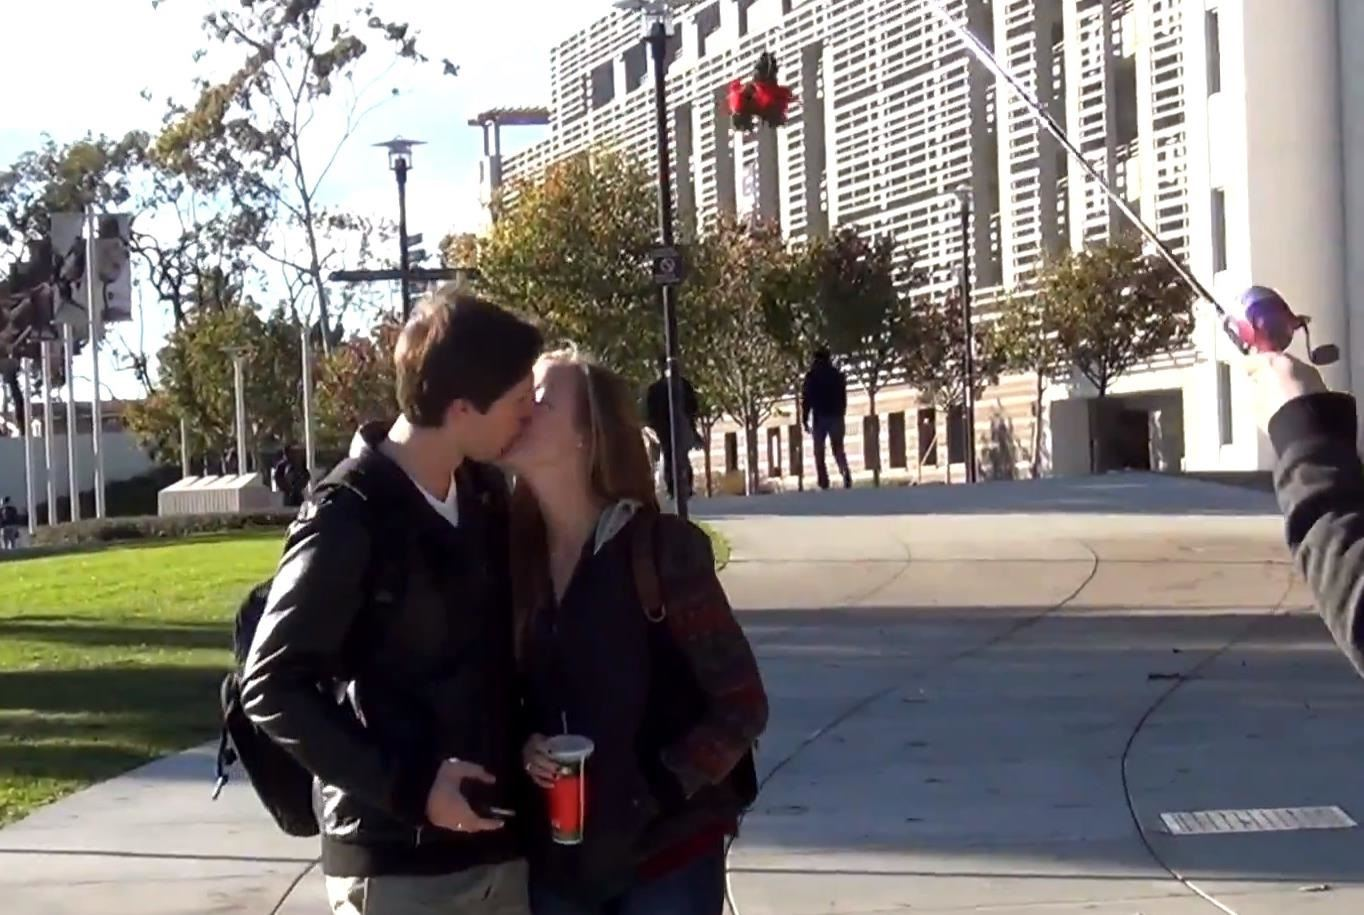 How to Get a Holiday Kiss from Any Girl You Want with This Sneaky Christmas Trick